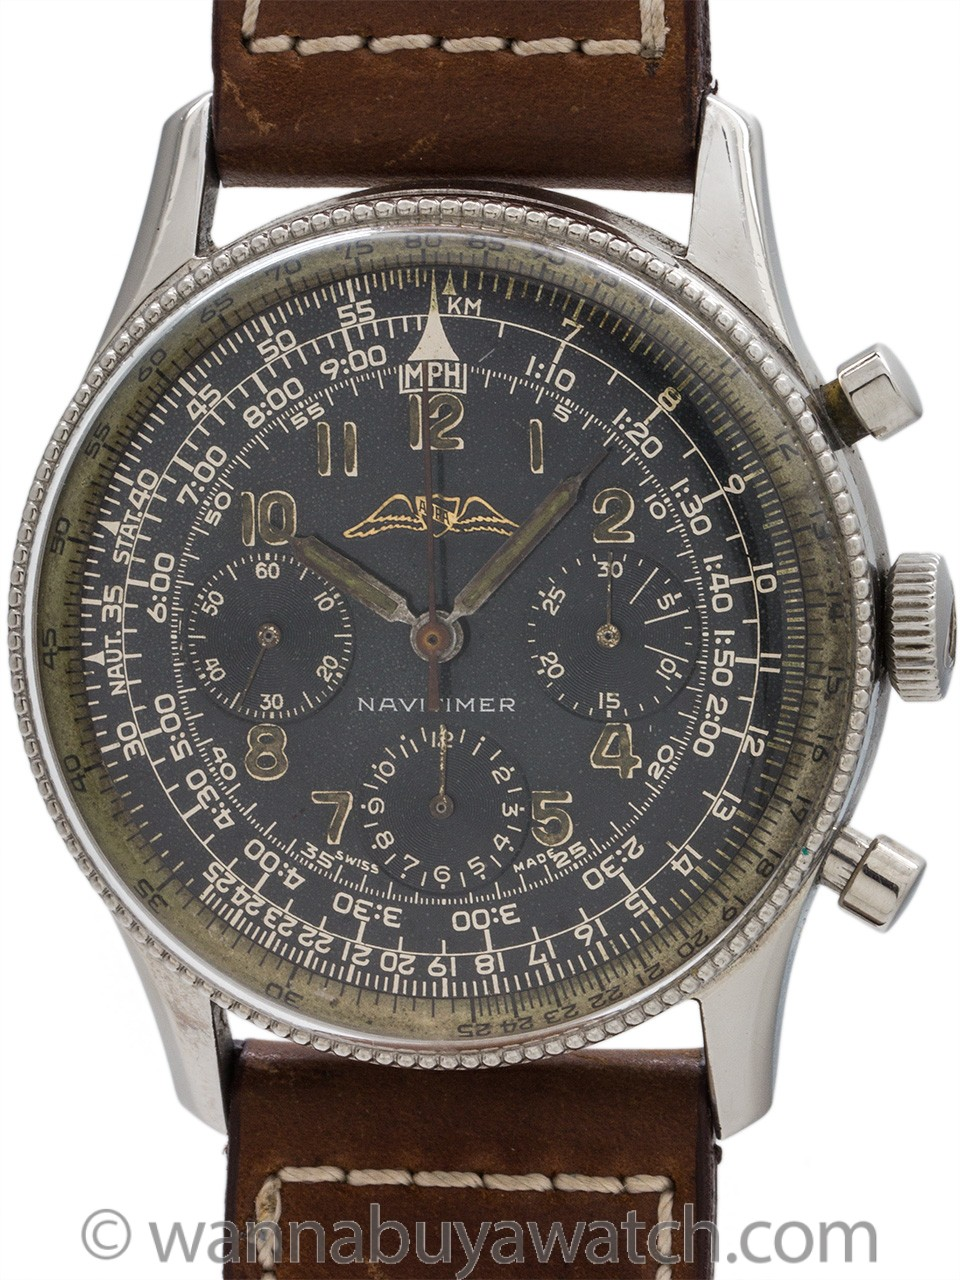 Breitling Navitimer AOPA Valjoux 72 pre 806 circa 1956 with Provenance